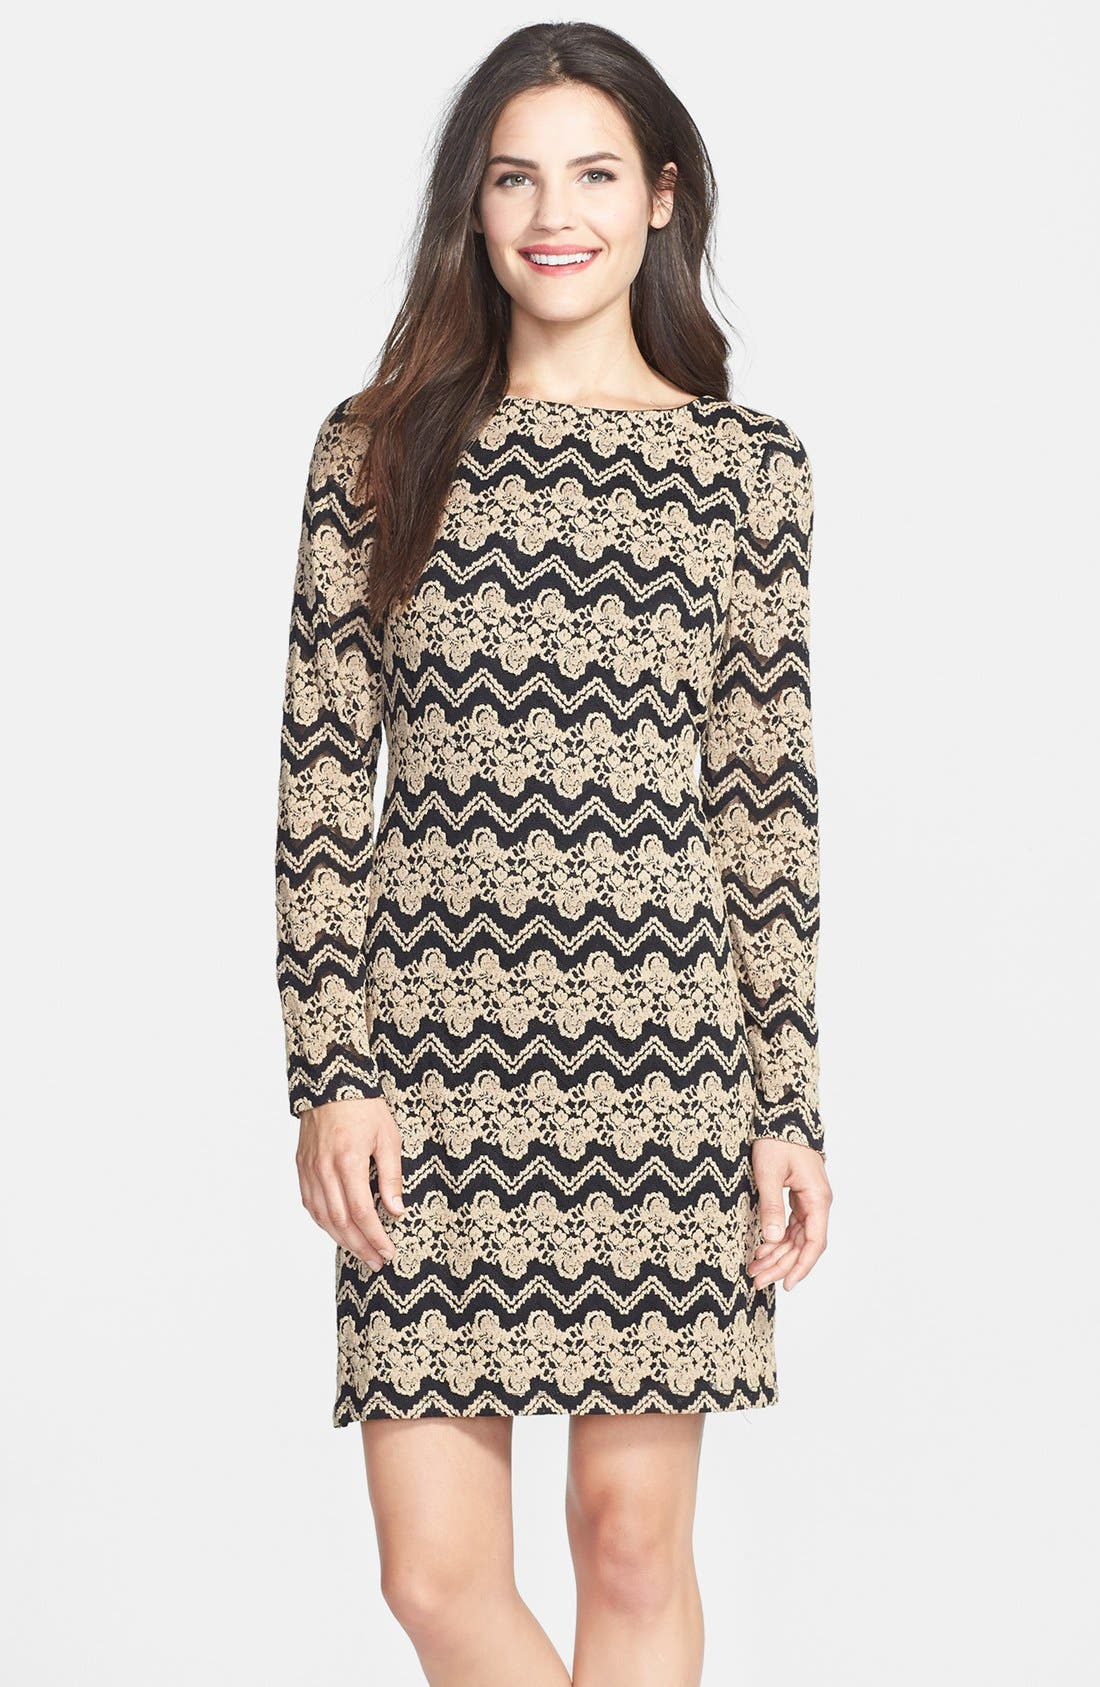 ELIZA J Chevron Lace Shift Dress, Main, color, 001